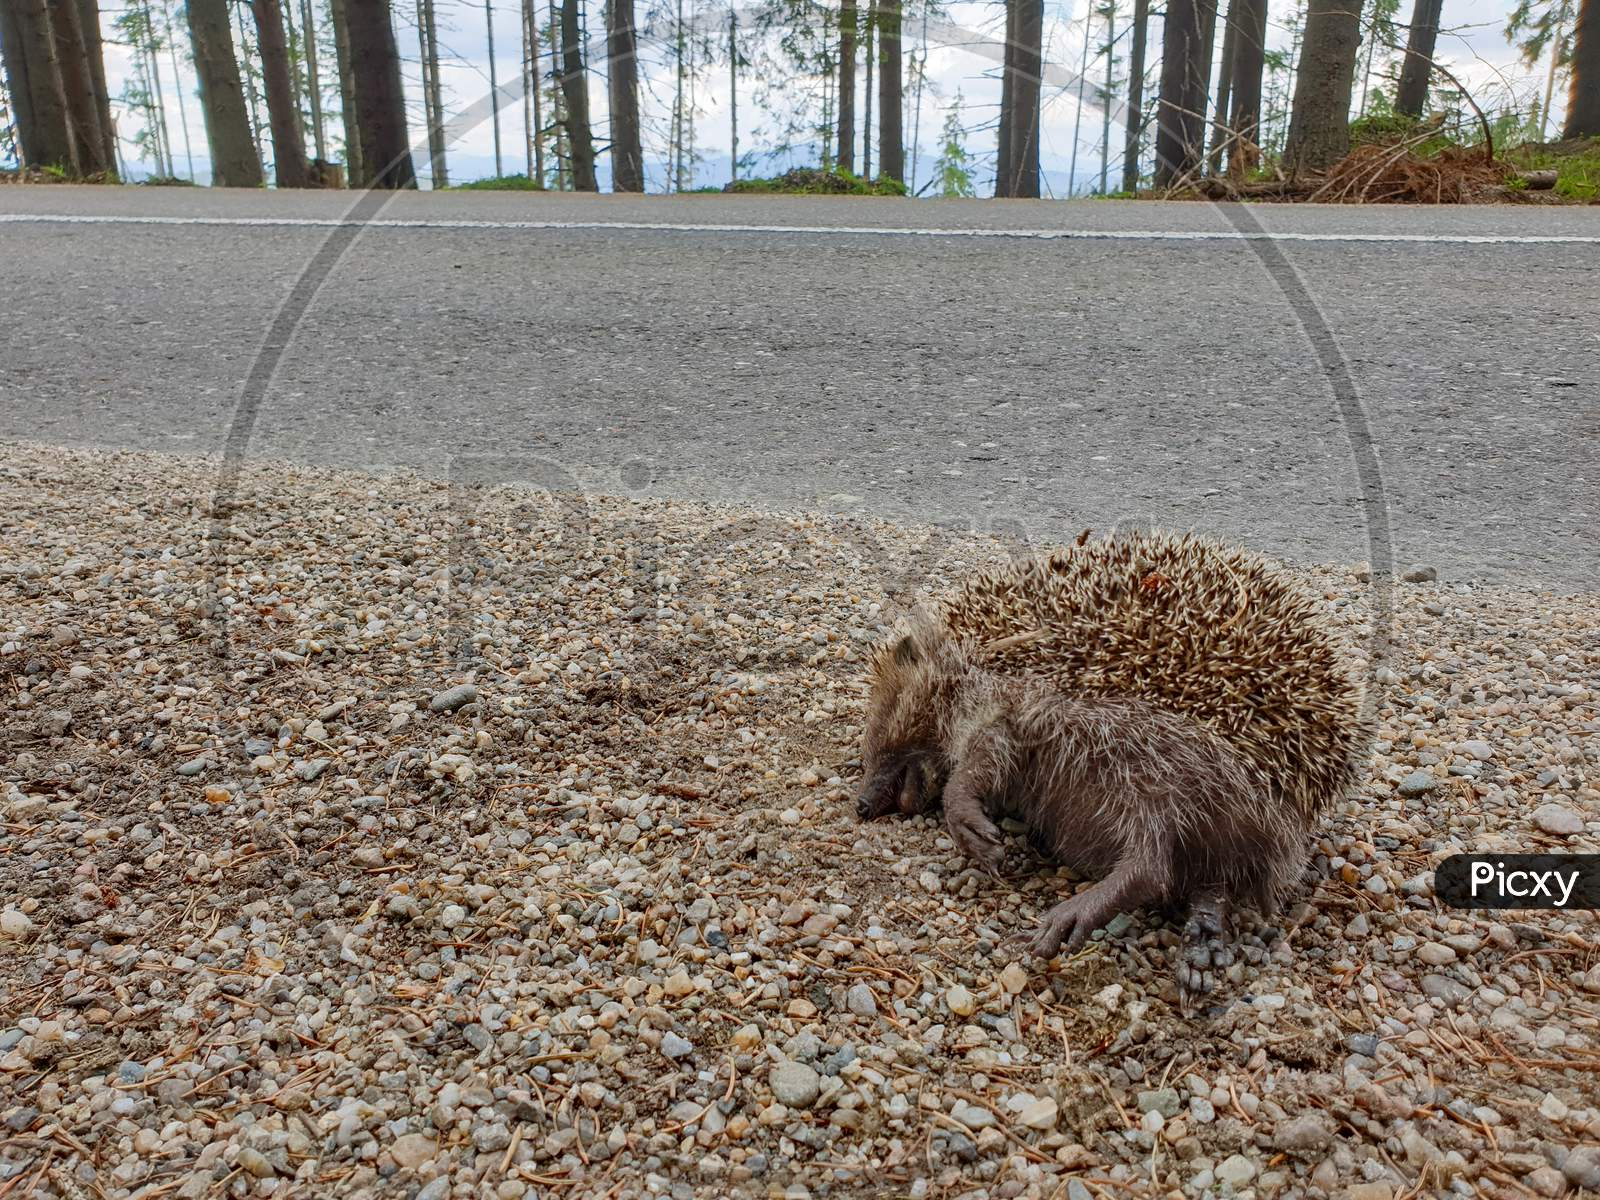 Dead Hedgehog Killed By Car On Nature Road